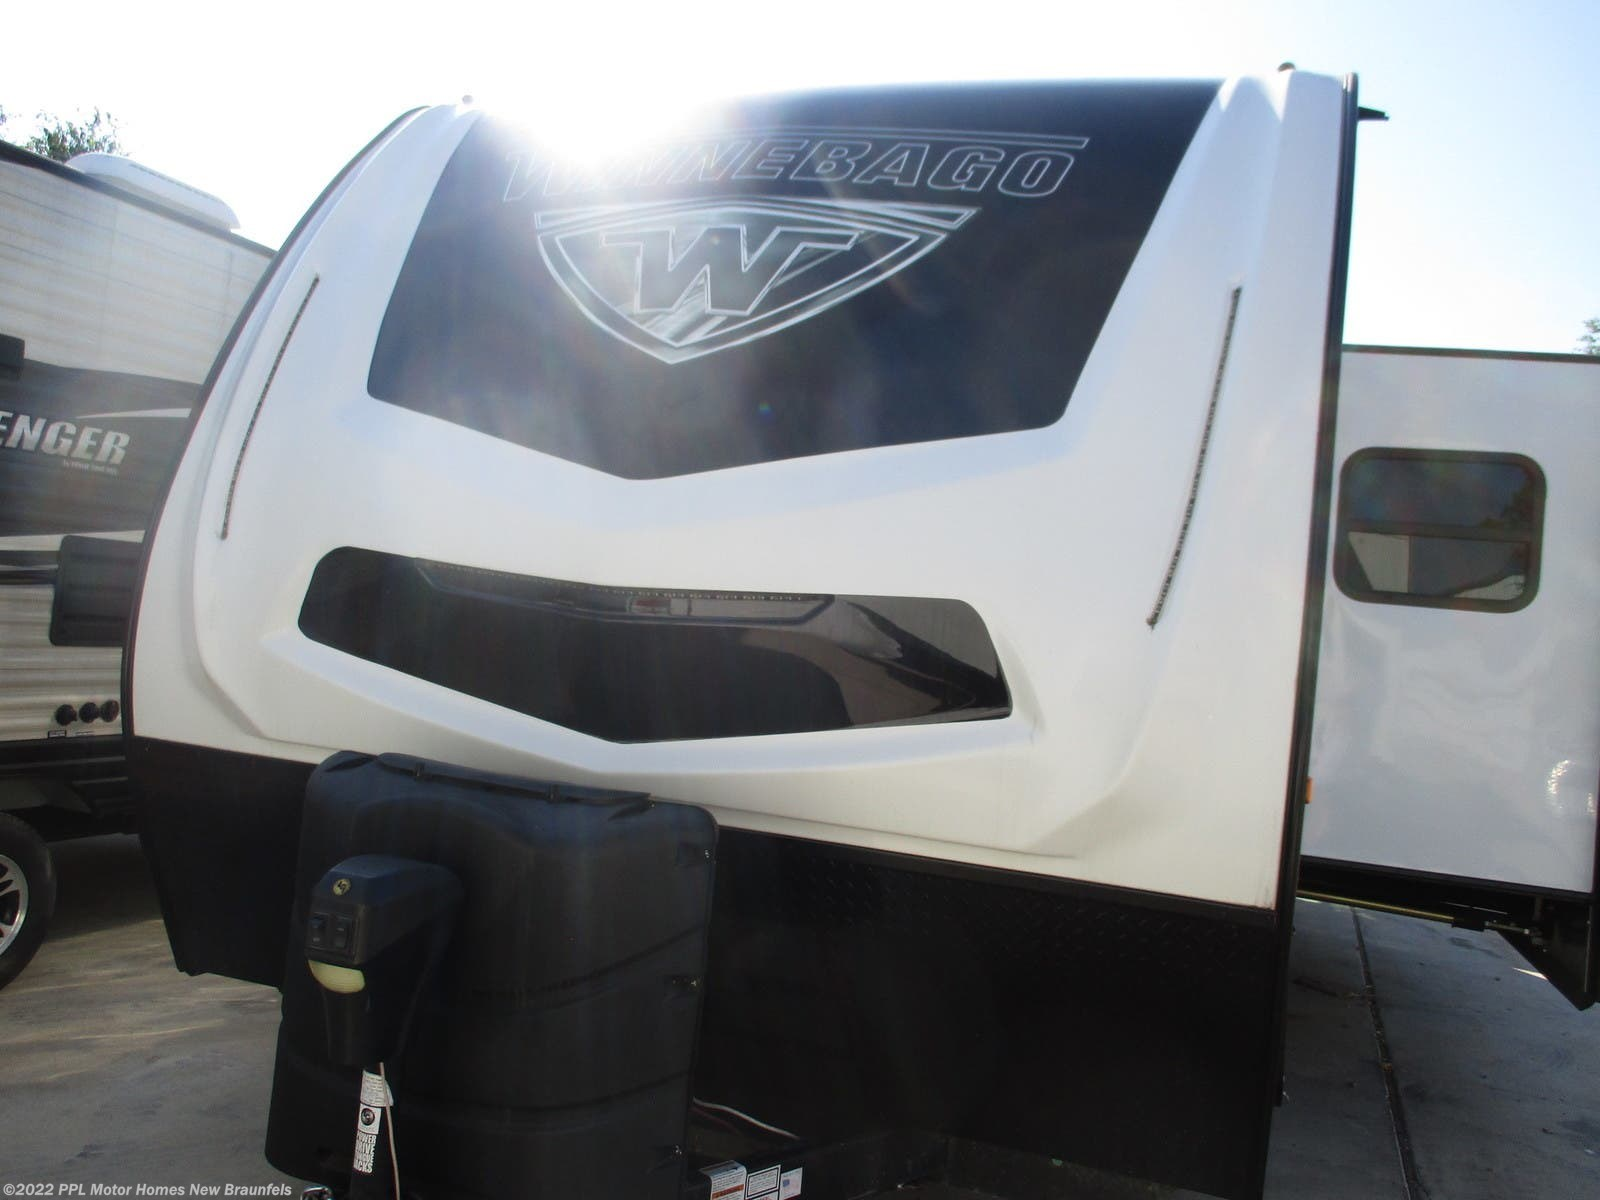 Lp Gas Cooktops For Rv On Sale Now Ppl Motor Homes >> 2018 Winnebago Rv Minnie Plus 26rbss For Sale In New Braunfels Tx 78130 T219nb